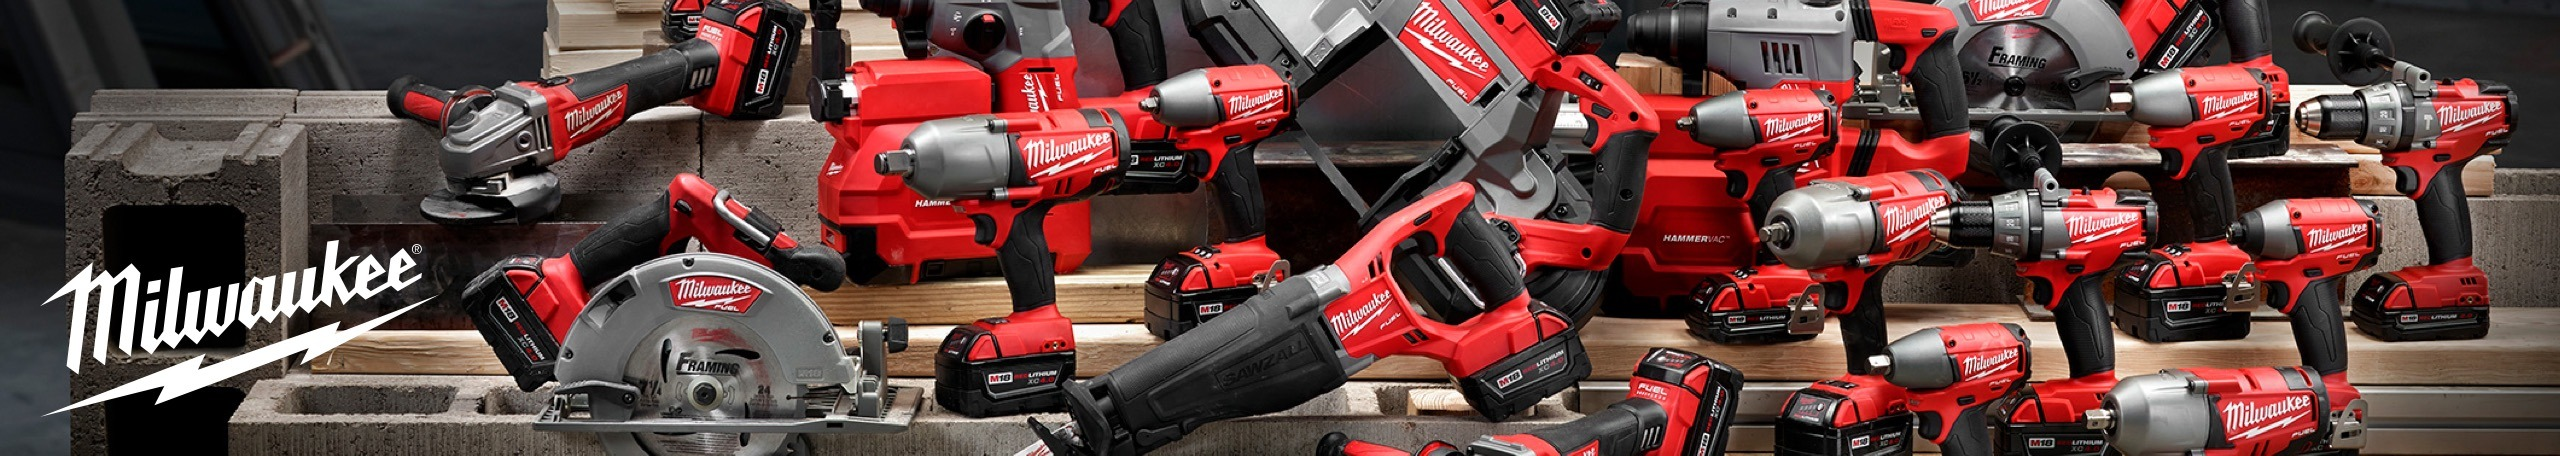 Shop Milwaukee power tools at Kansas Lumber Homestore